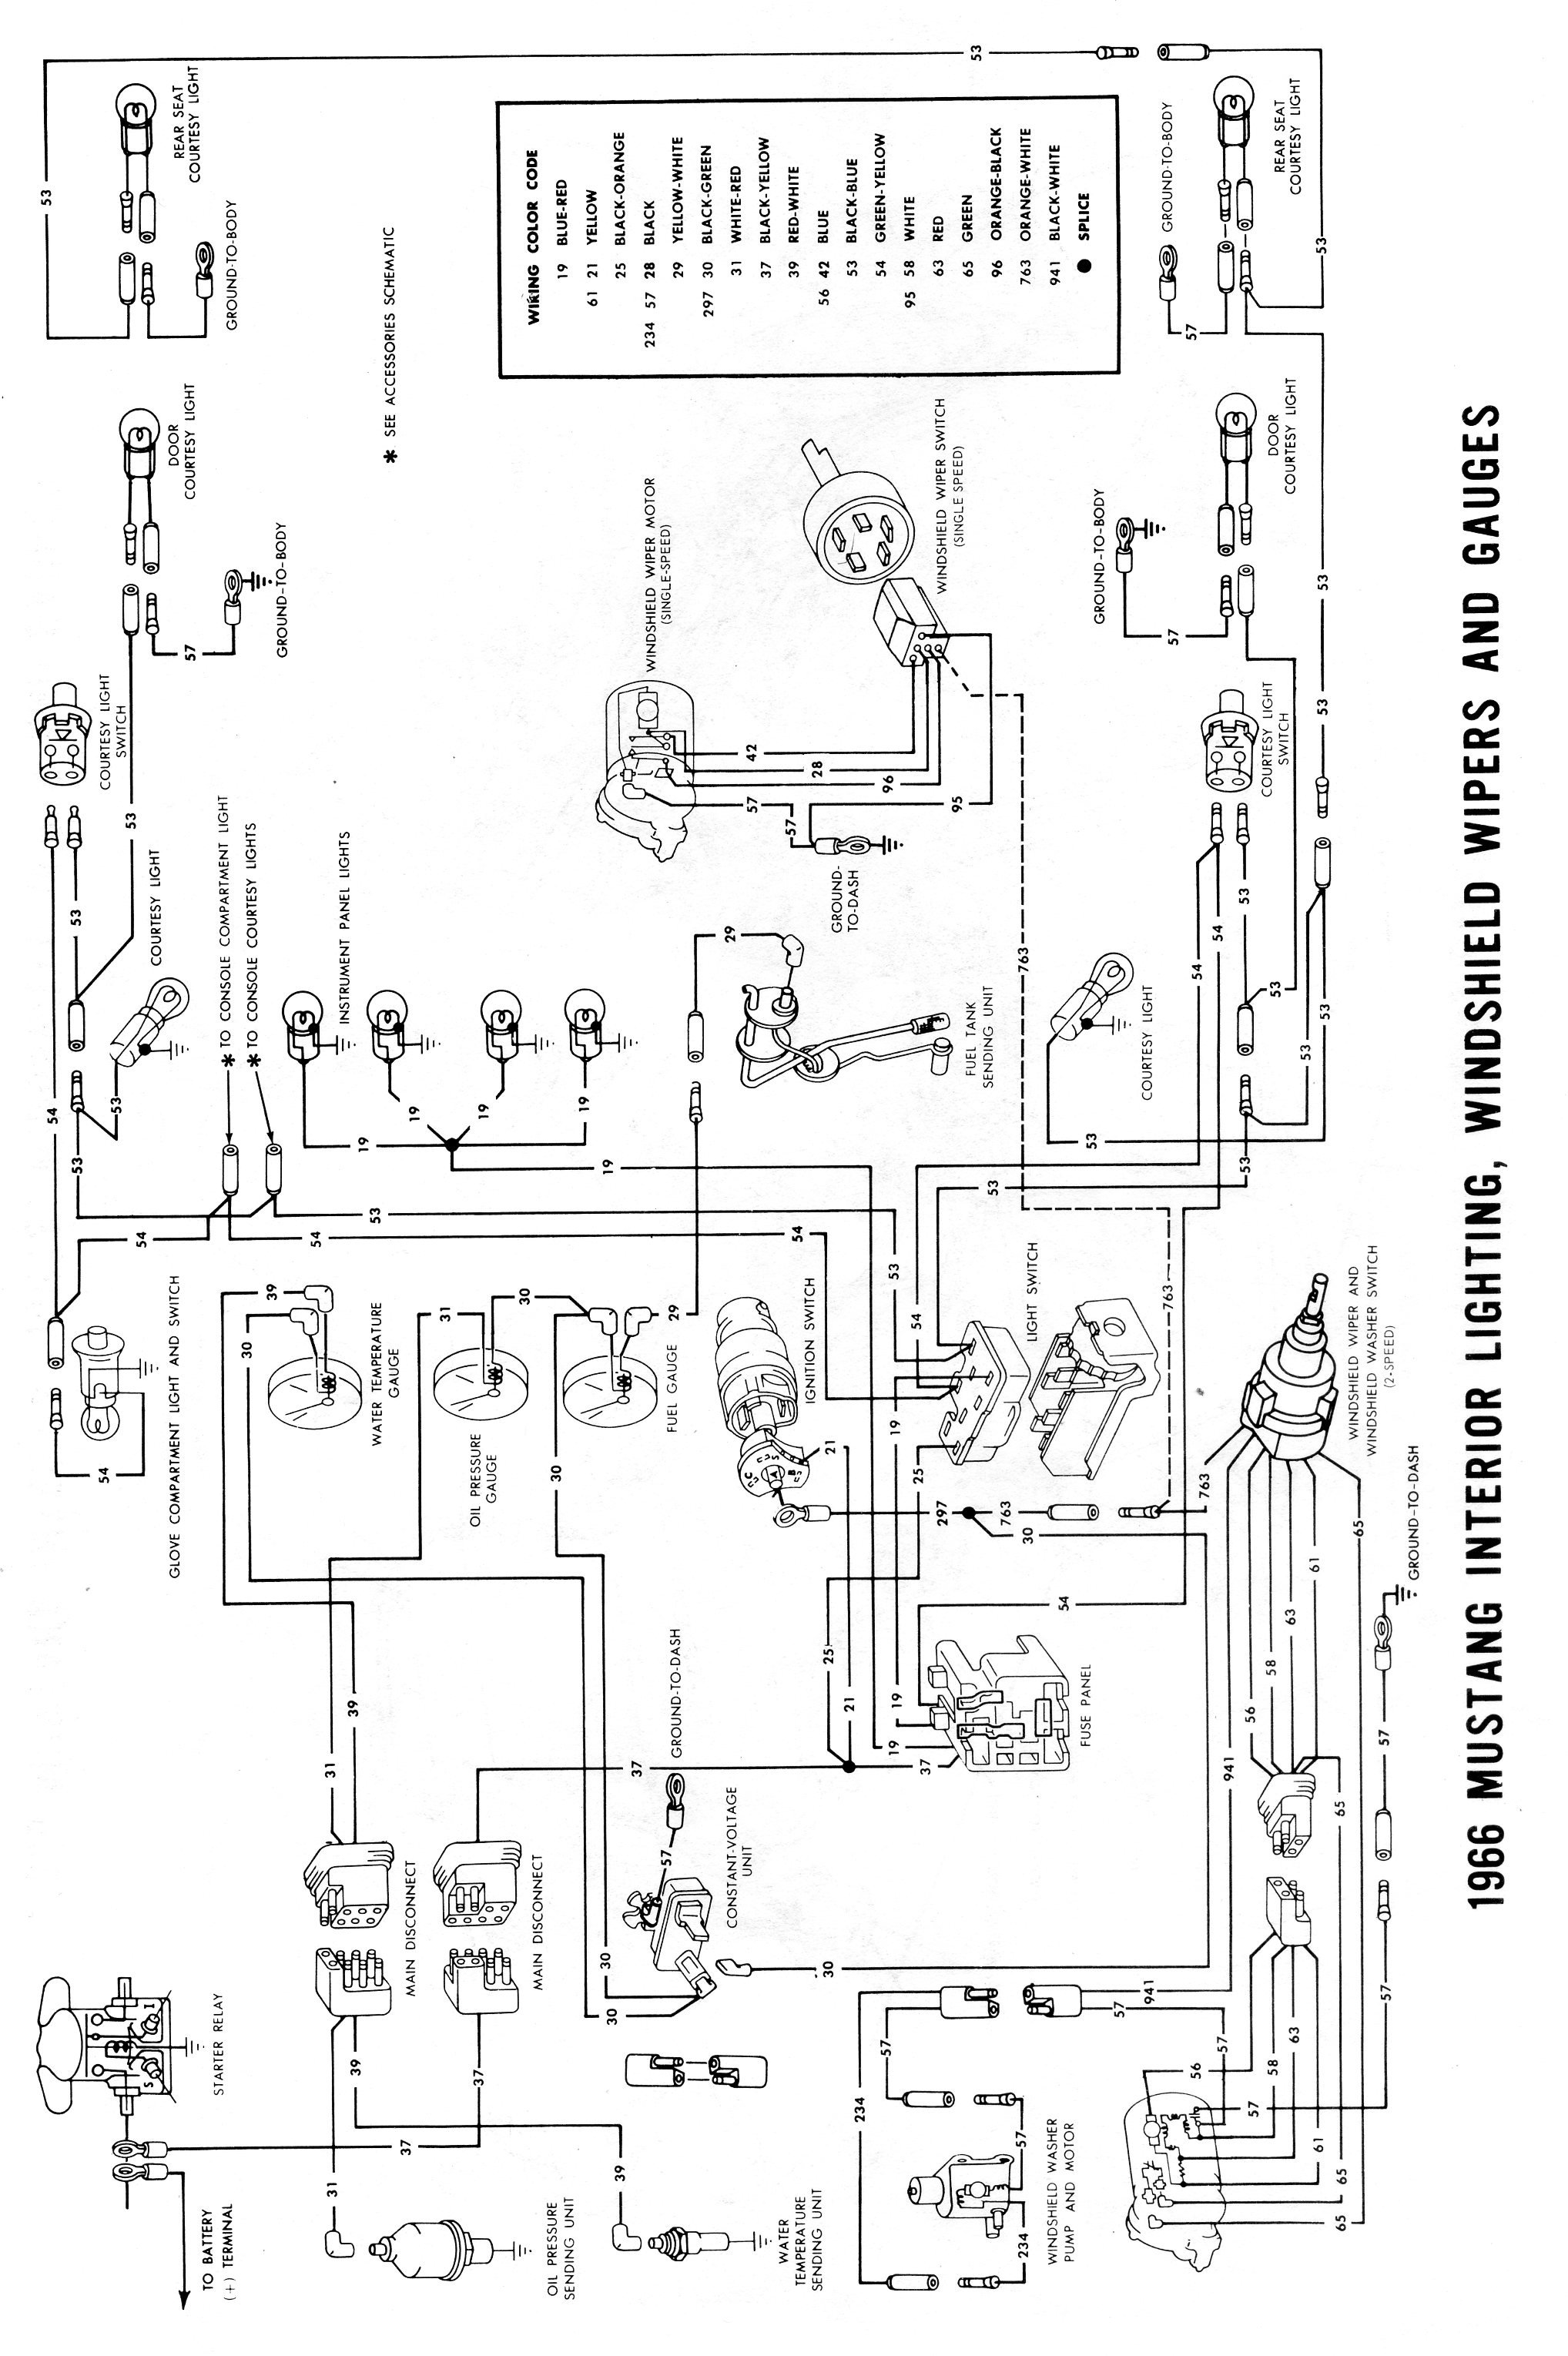 wiring diagram at fuse box cougar wiring why does my instrument fuse keep blowing out ford mustang forum on wiring diagram at fuse